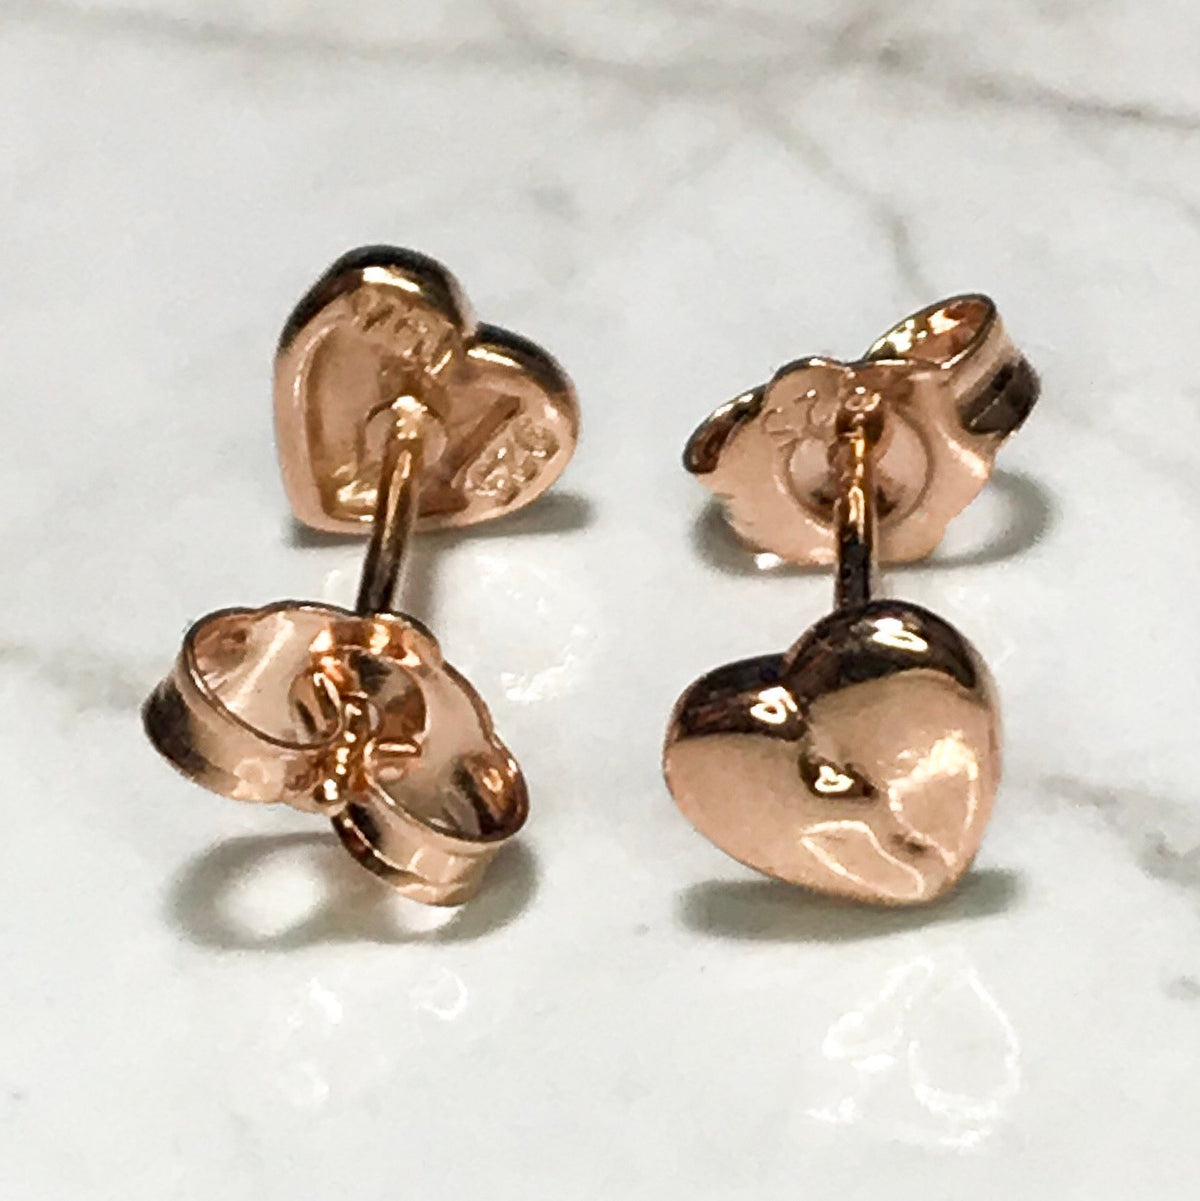 NEW 14K Gold Layered on Sterling Silver Tiny Broken Heart With No Stone Earrings